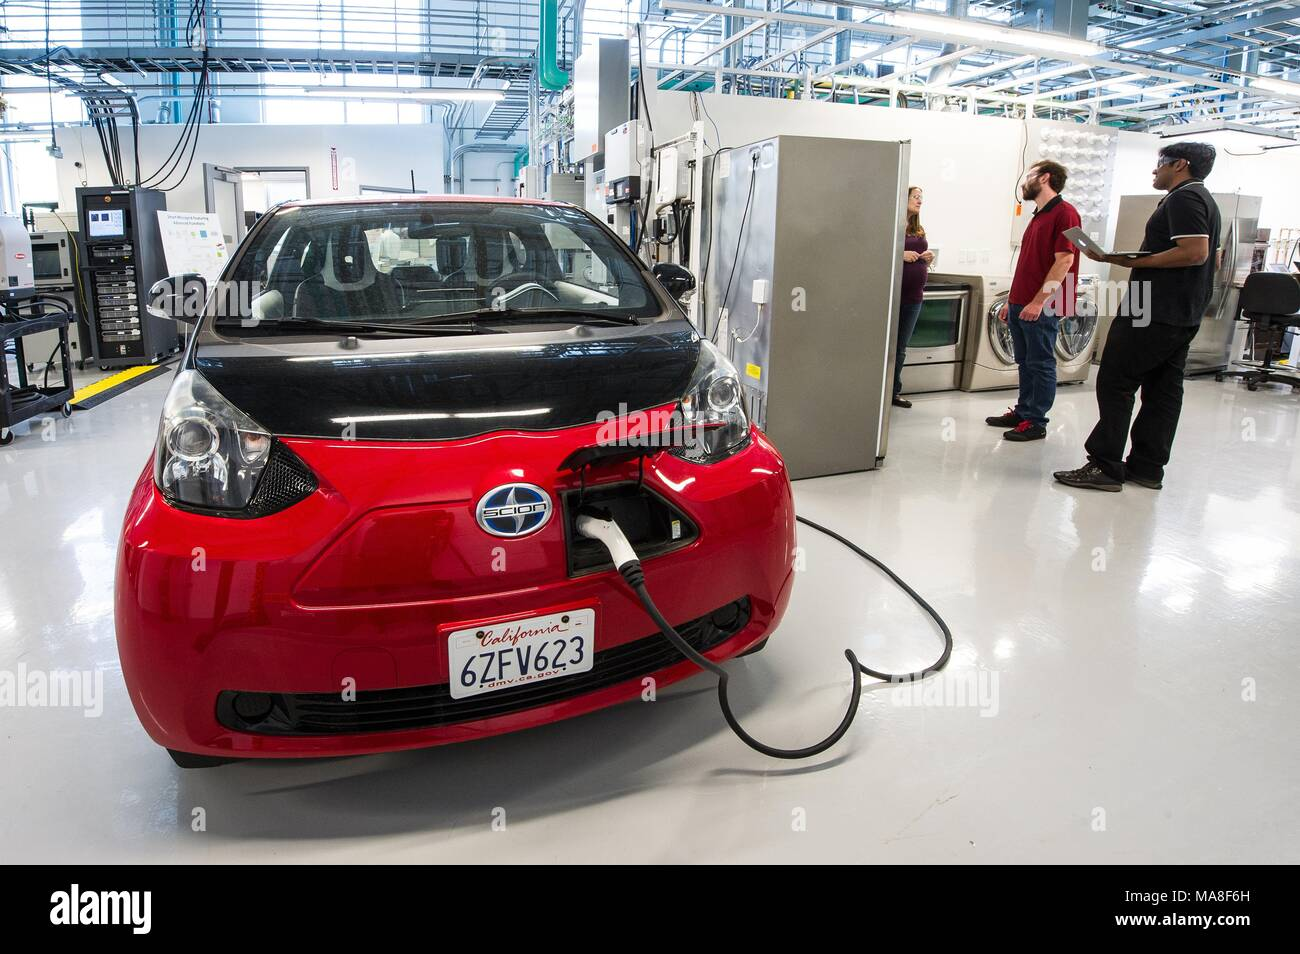 Three National Renewable Energy engineers work on the Electric Vehicle Supply Equipment (EVSE) and PV inverter as part of a 'smart-home-in-the-loop experiment, ' using a red, Toyota Scion, electric car, parked in a laboratory, at the Systems Performance Lab at the Energy Systems Integration Facility (ESIF), image courtesy of the US Department of Energy, July 11, 2016. () Stock Photo